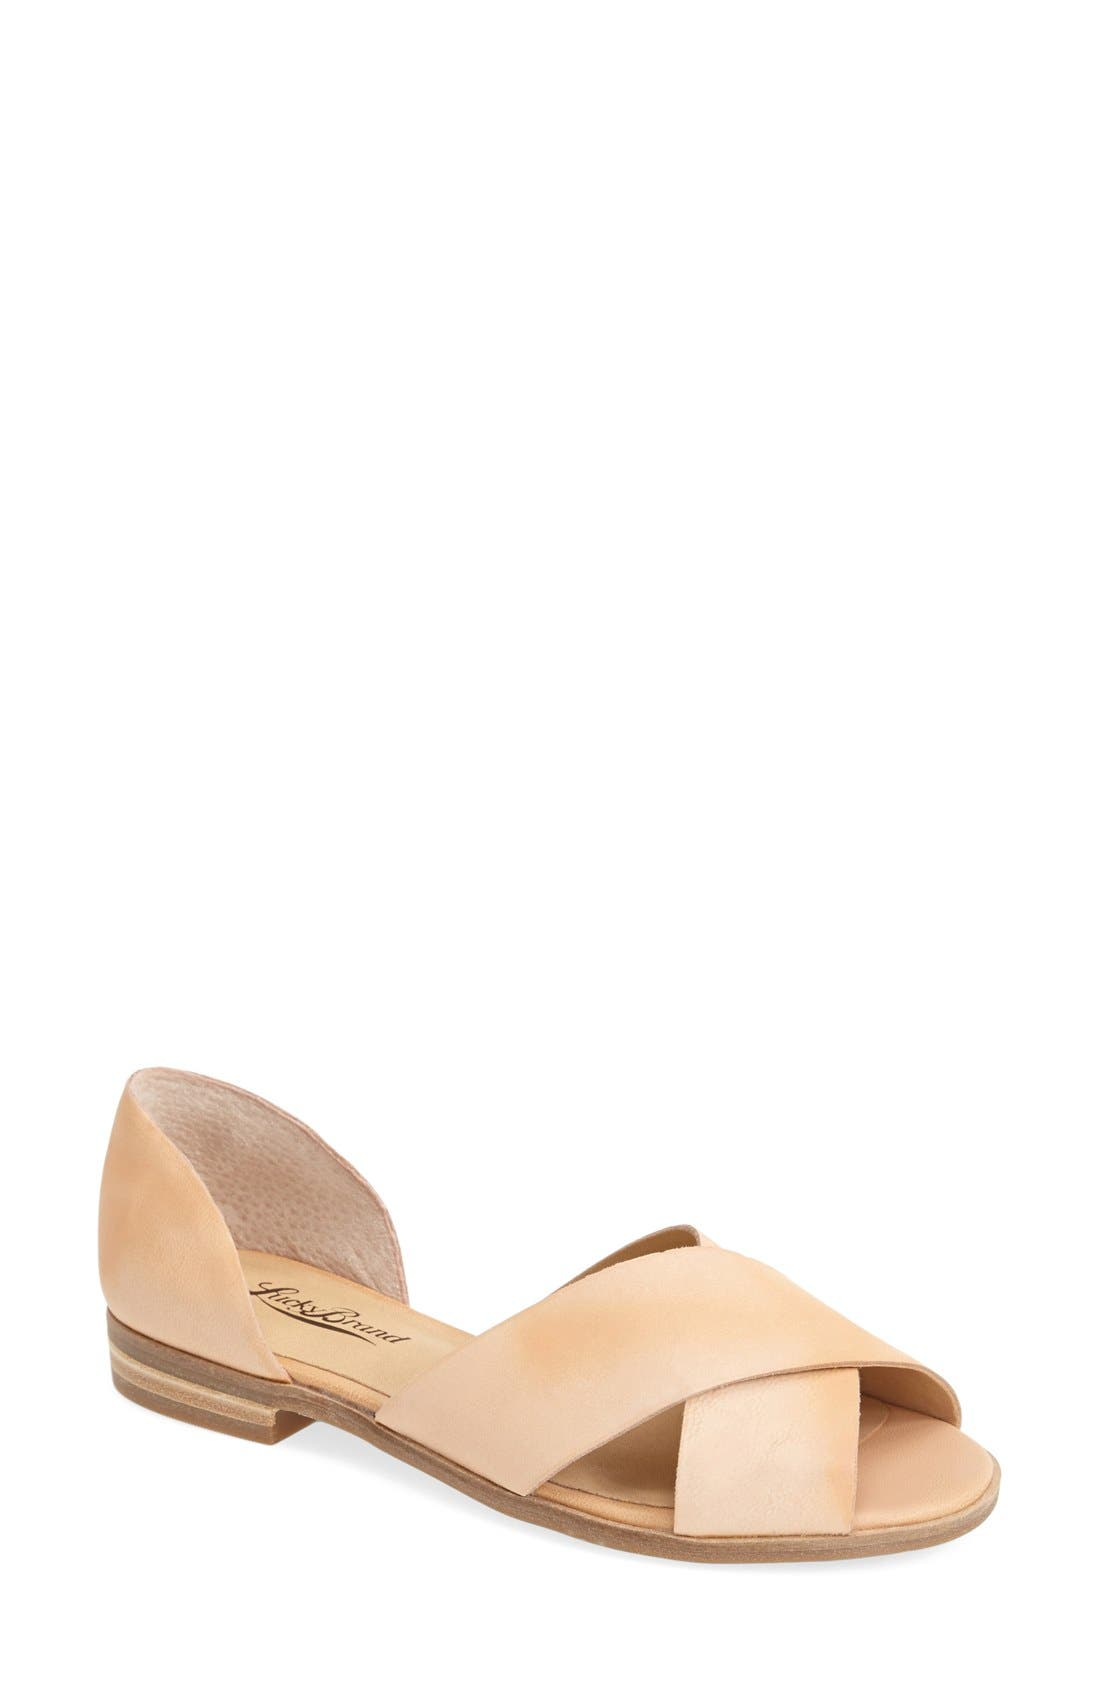 Alternate Image 1 Selected - Lucky Brand 'Silla' Leather Cross Strap Sandal (Women)